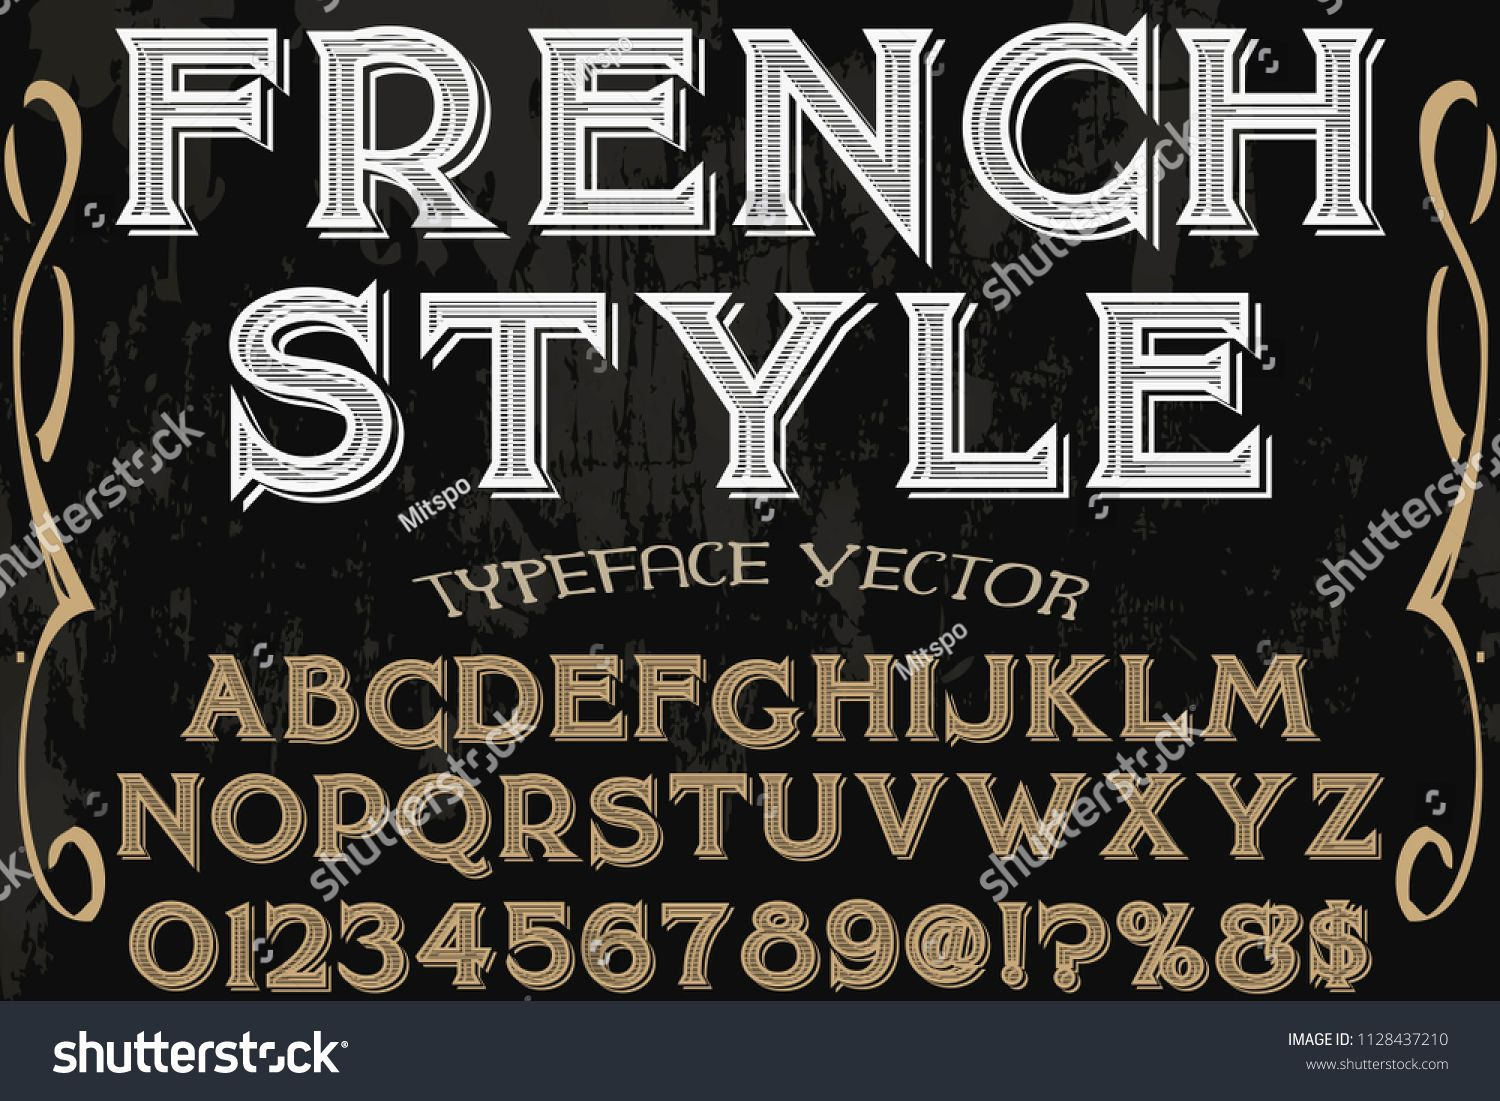 Font Alphabet Script Typeface Handcrafted Named Vintage French Style Sponsored Ad Script Typeface Font Alpha Fonts Alphabet Script Typeface Typeface Font